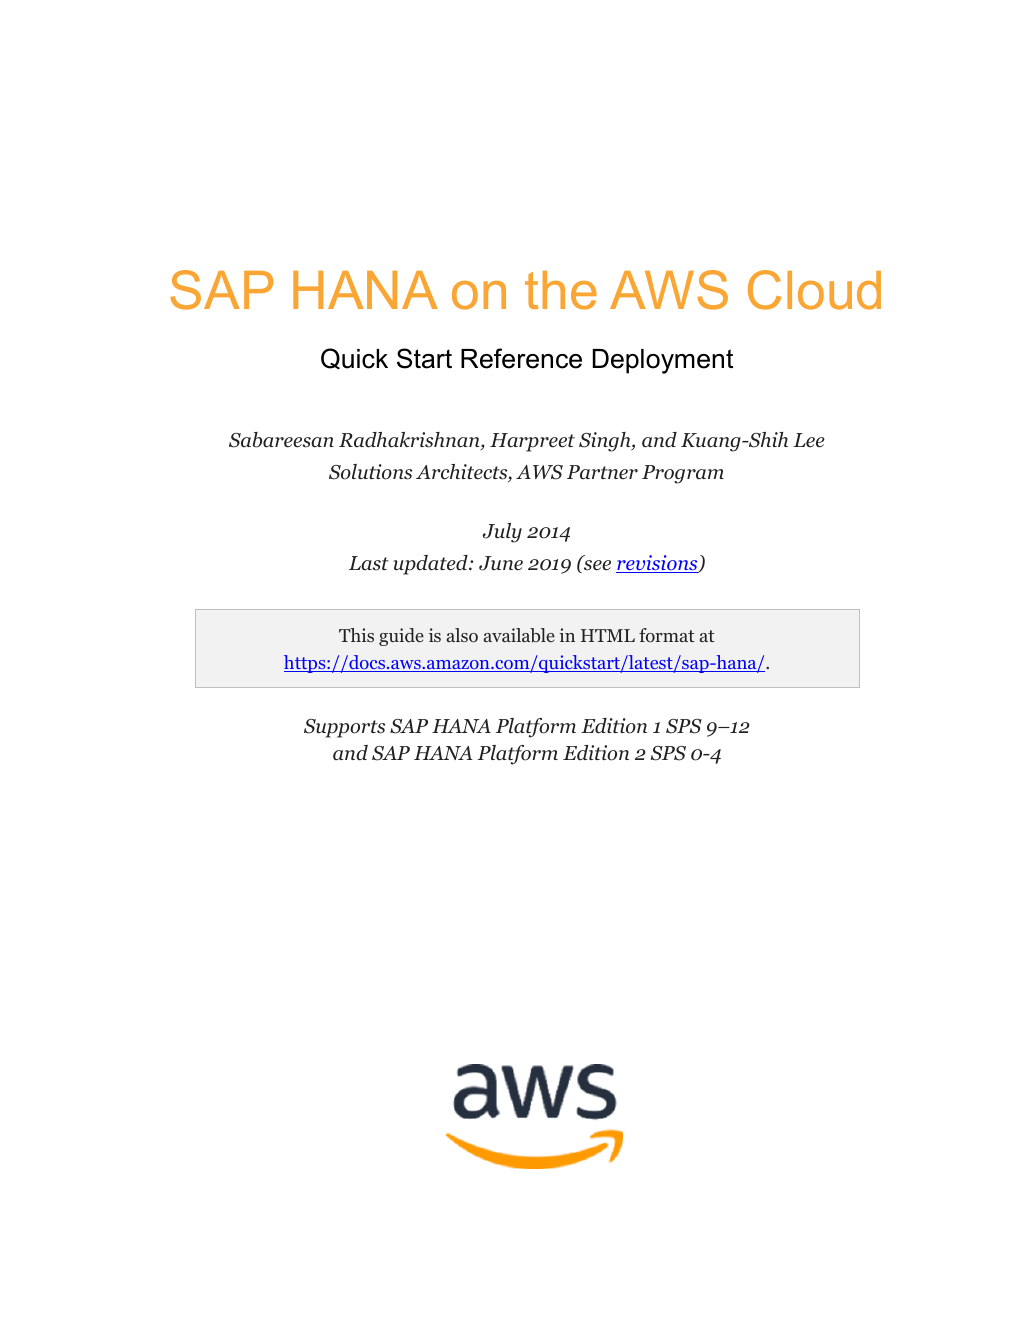 Technical Guide: Quick Start Deployment Architecture: SAP